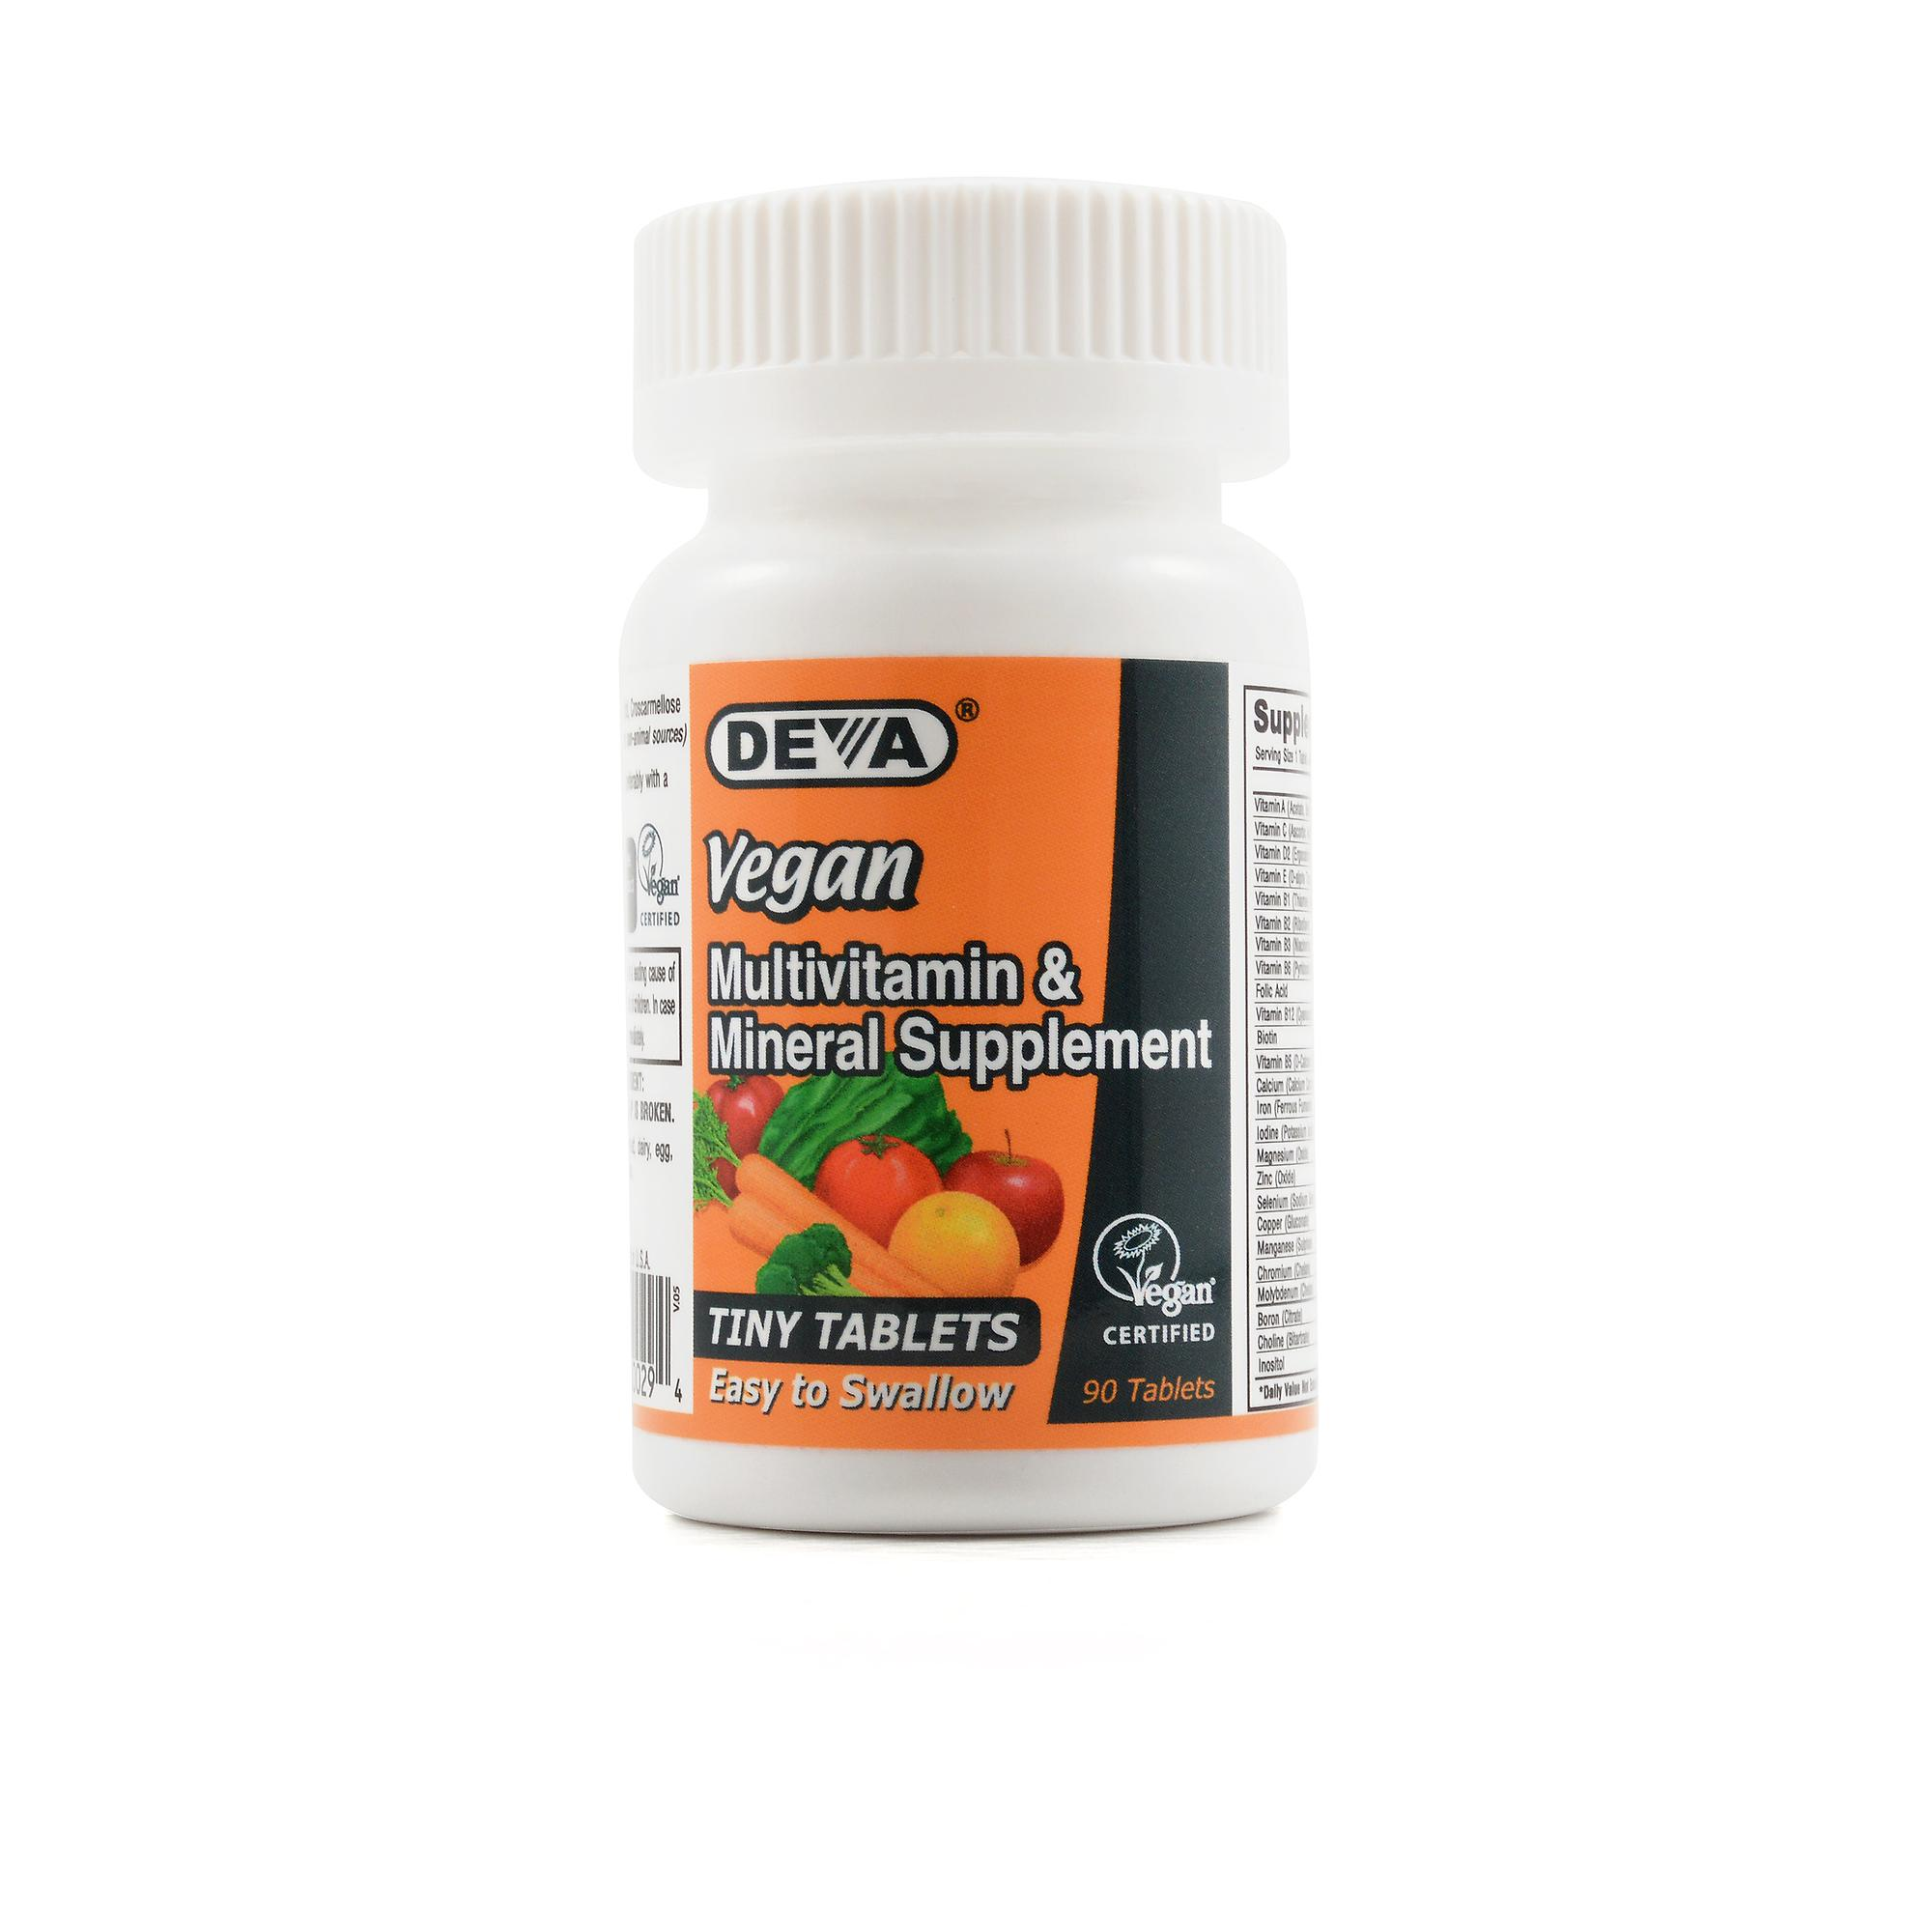 deva vegan prenatal vitamins reviews